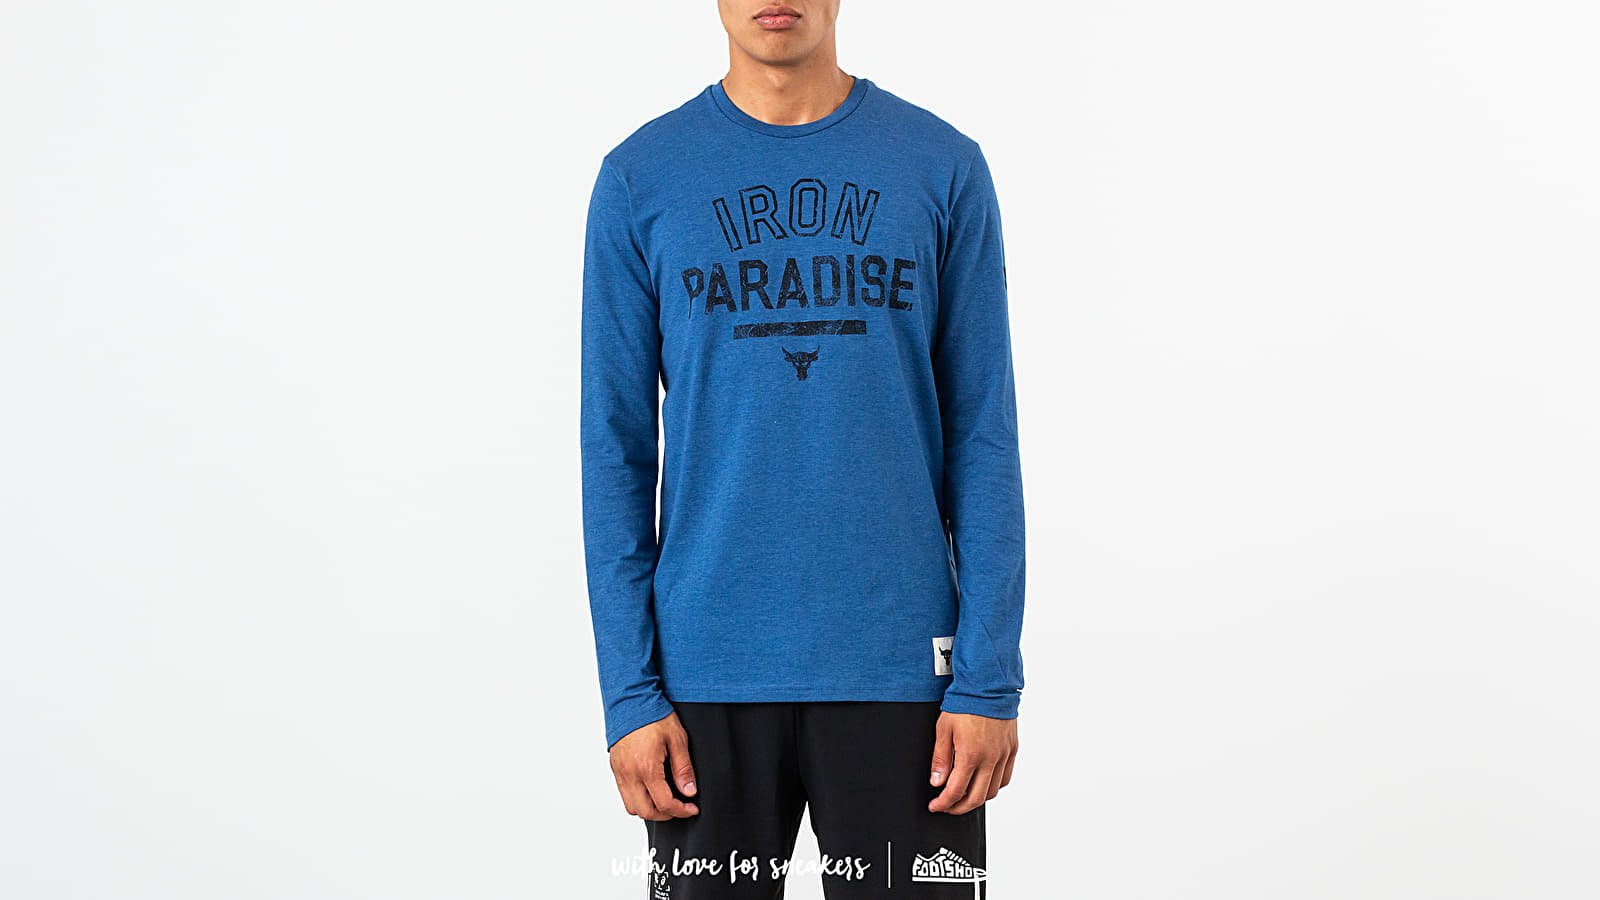 Under Armour Project Rock Iron Paradise Long Sleeve Tee